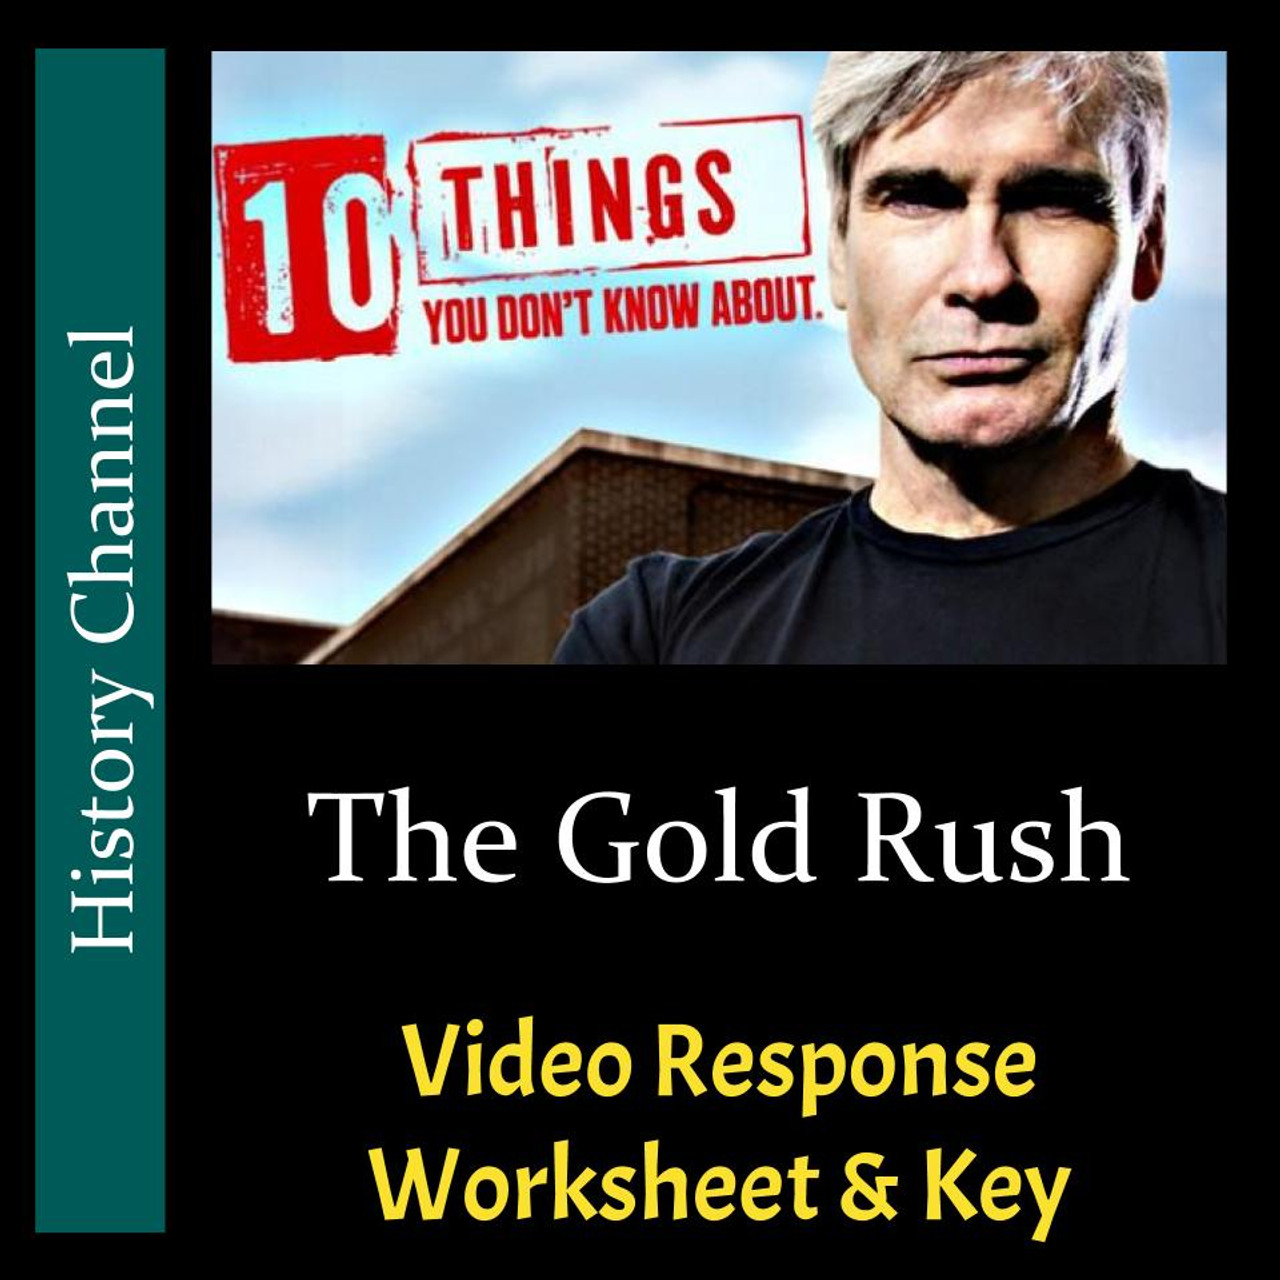 10 Things You Don't Know About The Gold Rush